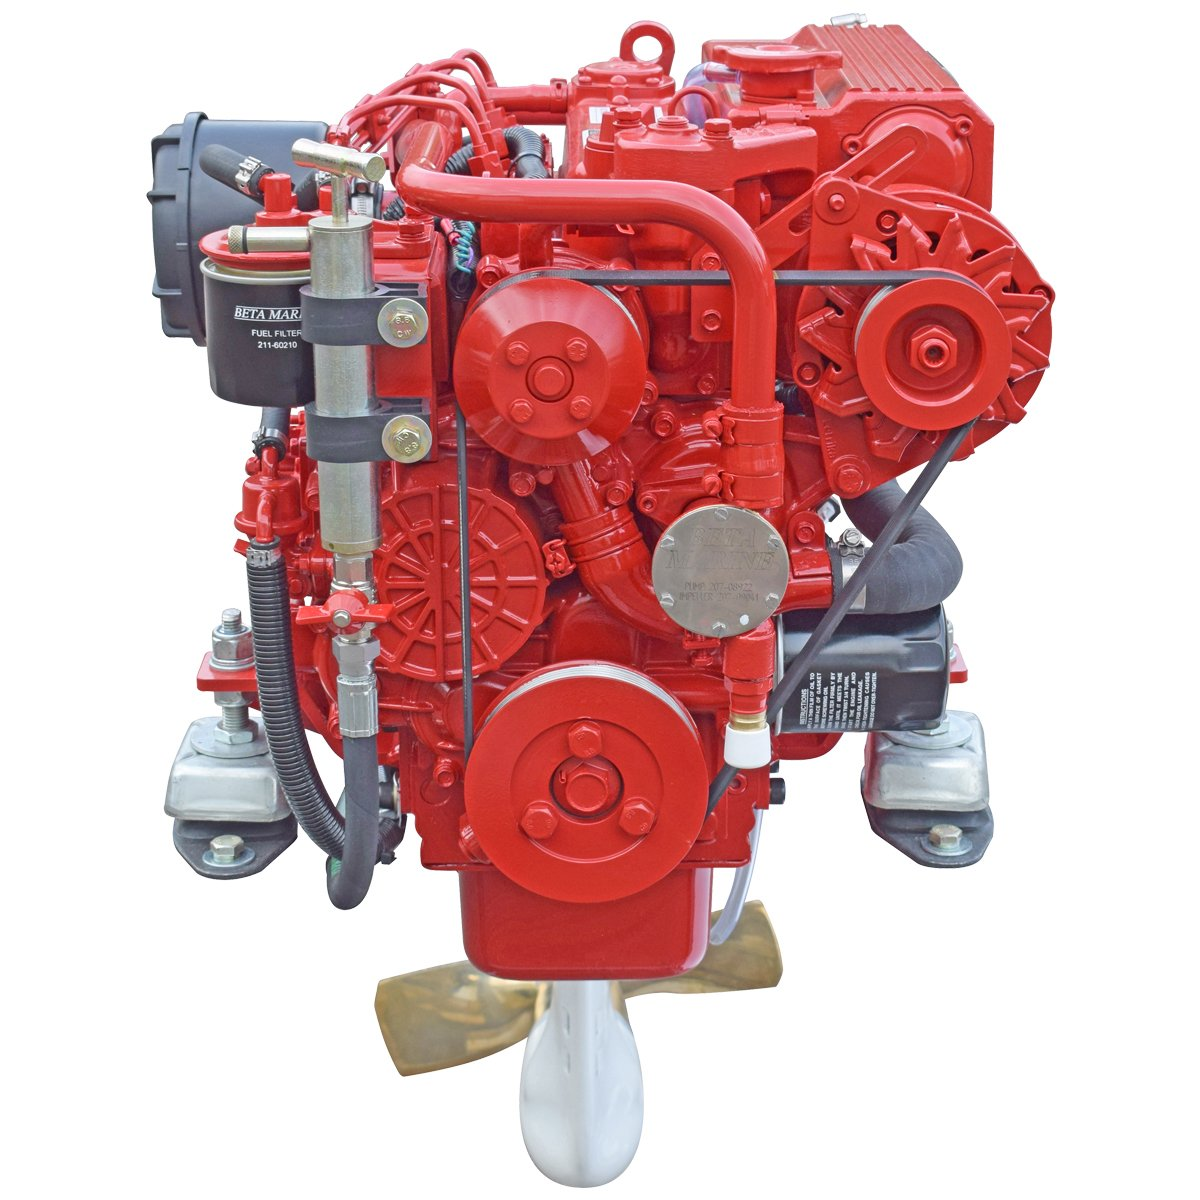 Beta Marine USA - marine diesel saildrive engine - Beta 35 heat exchanger saildriive